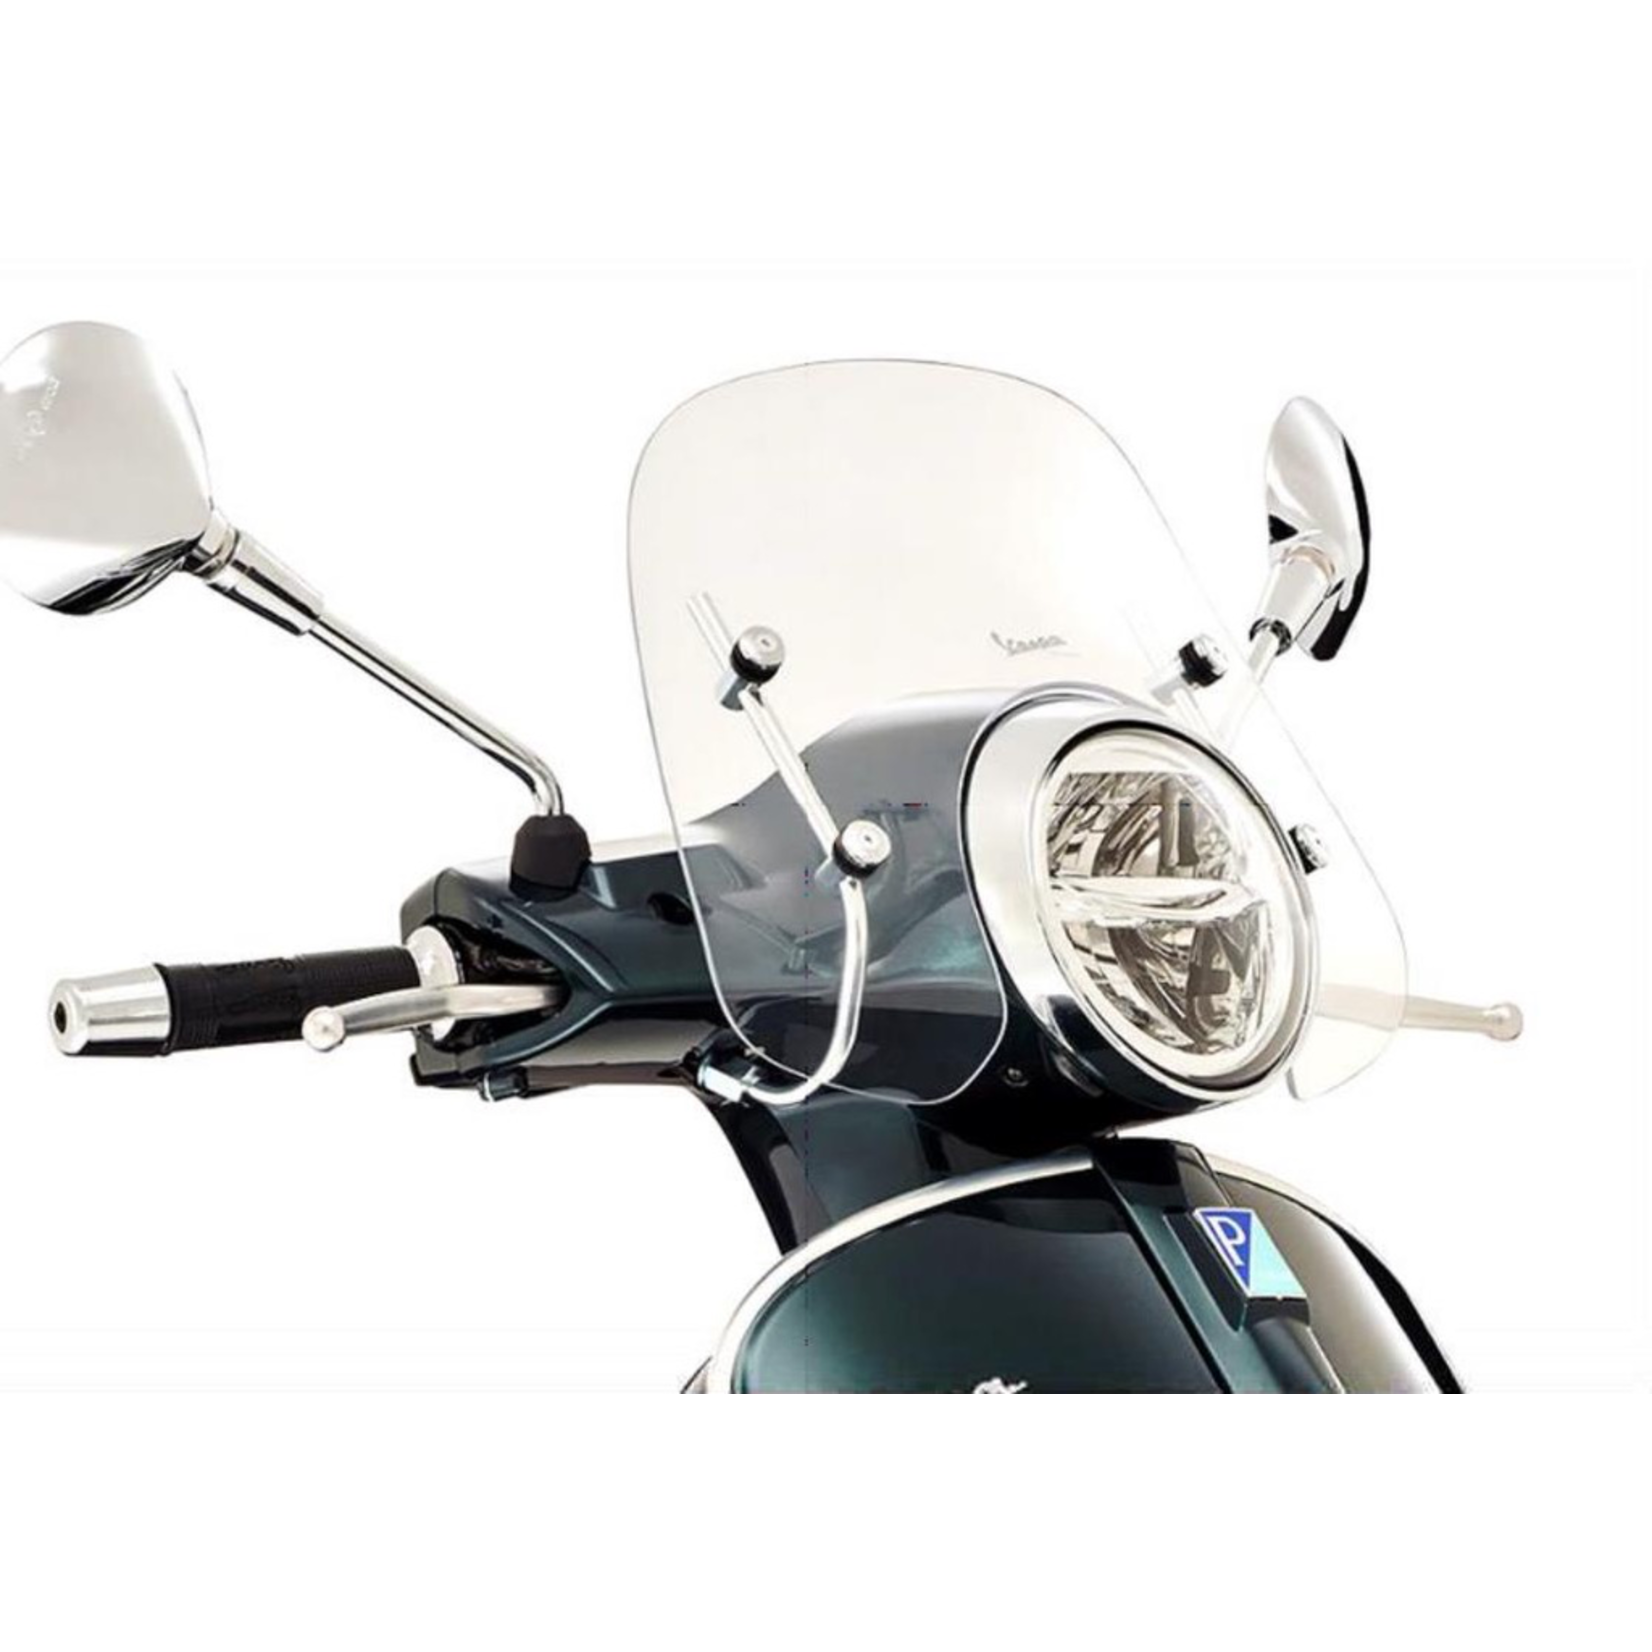 Accessories Windshield, GTS300 HPE Clear